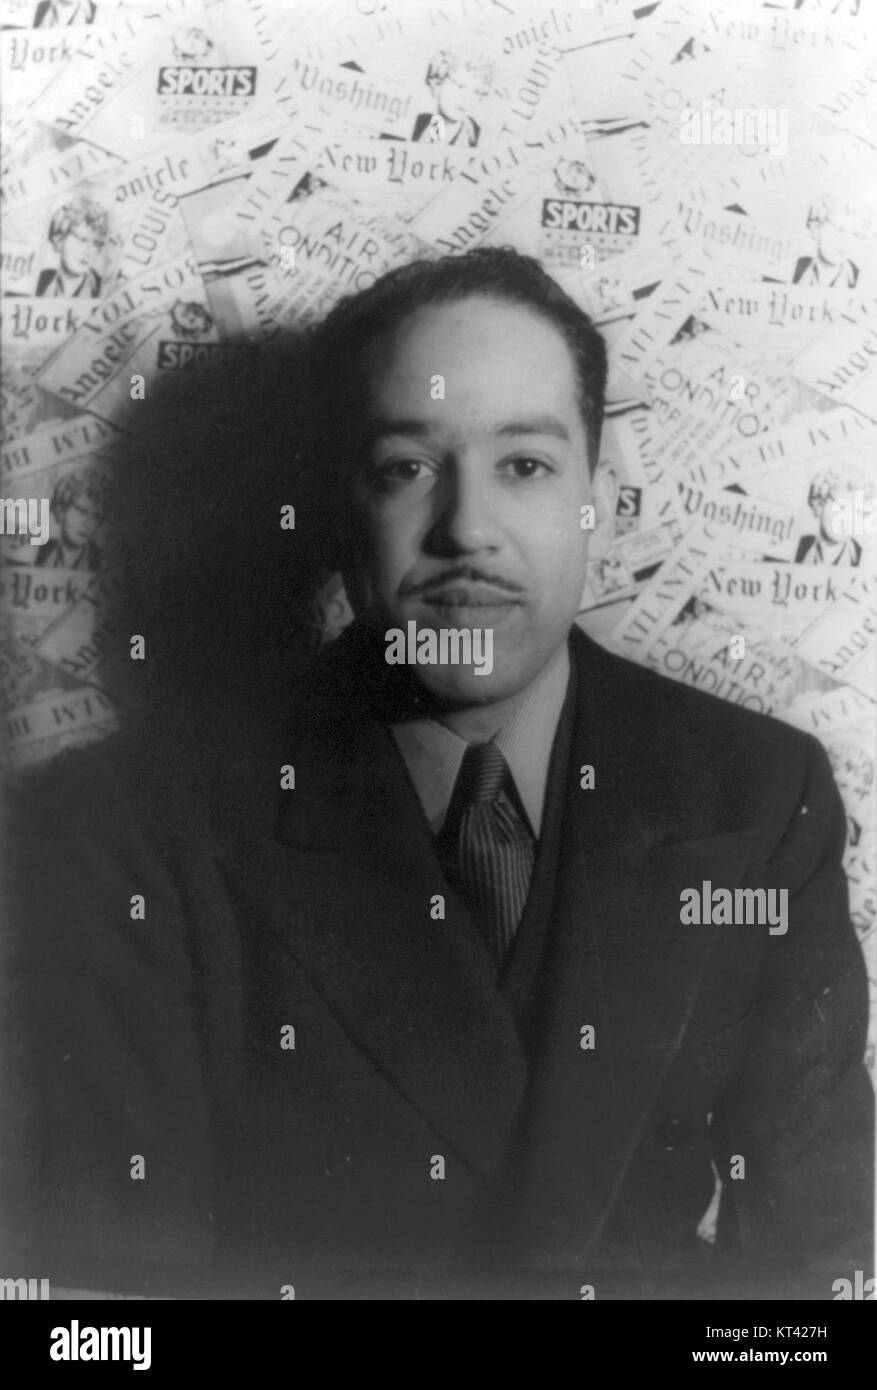 a look at the life of langston hughes an african american poet novelist journalist and playwright A pioneer of modern black literature, langston hughes devoted his lengthy and   author of poetry, long and short fiction, plays, nonfiction, and autobiography   madrid correspondent for baltimore afro-american, 1937 visiting professor in   and his mother, carrie, traveled from city to city in search of better-paying work.